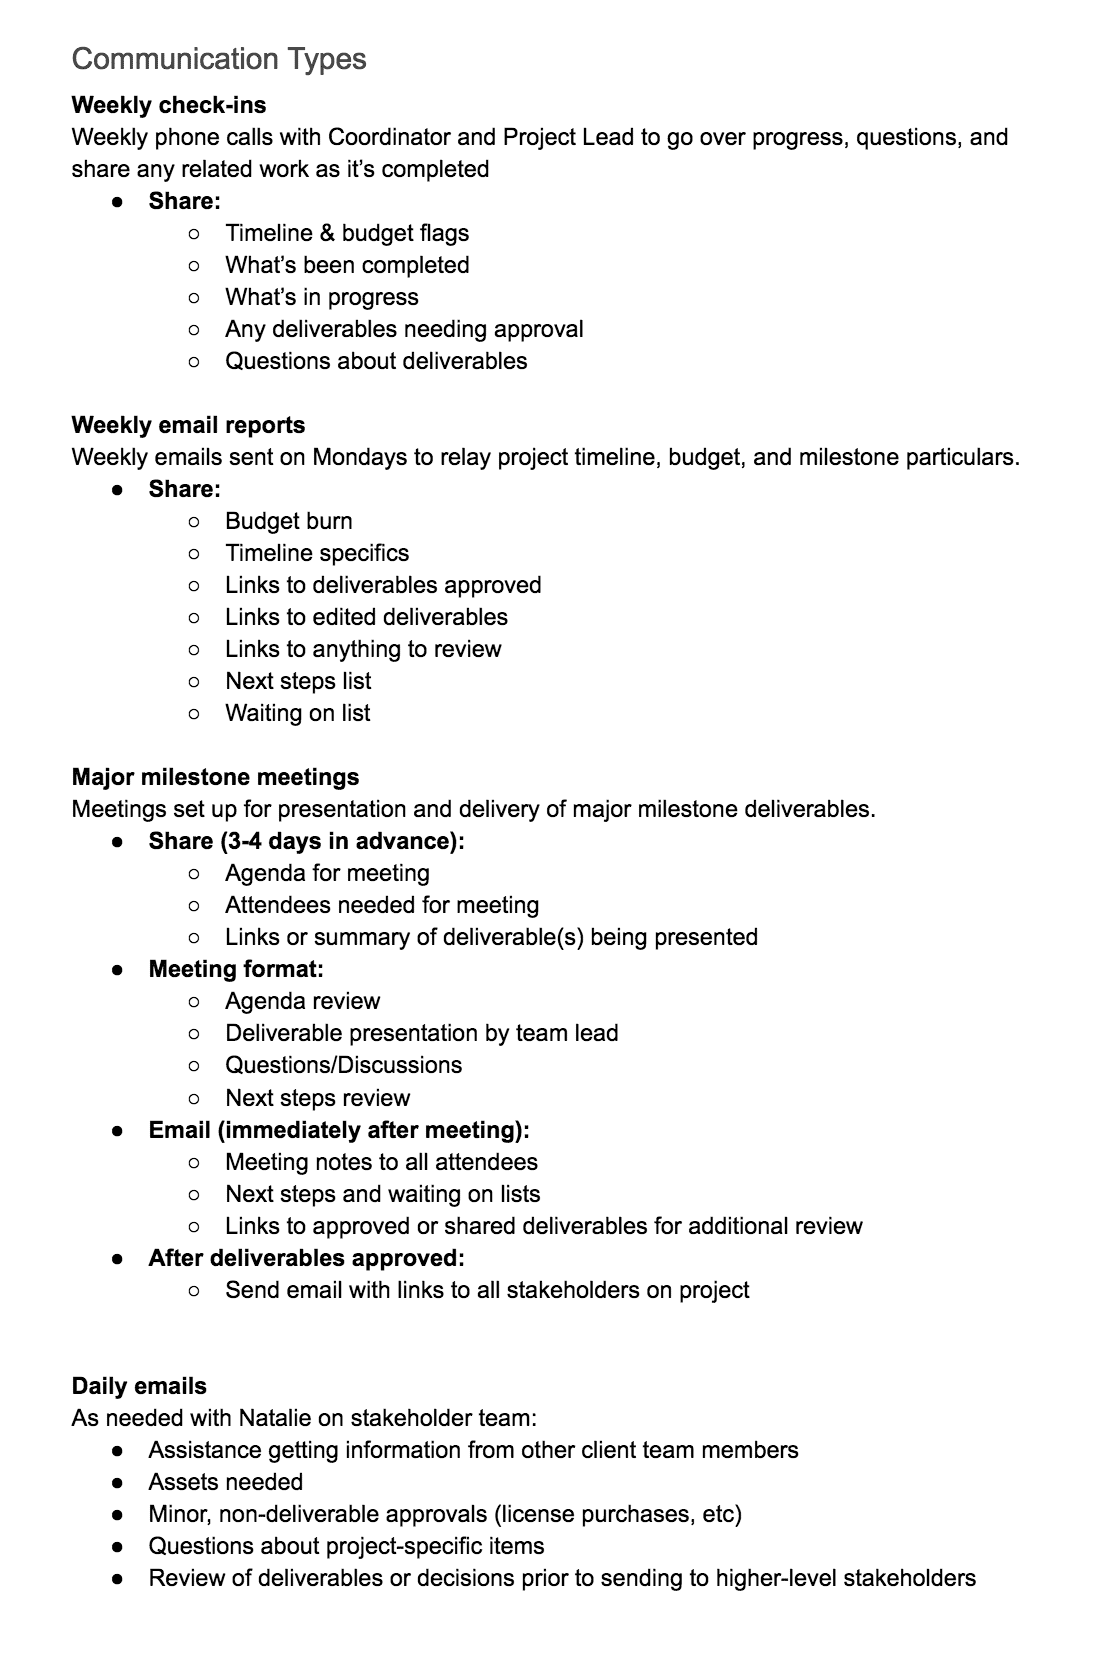 Project communication plan example - Types of communication